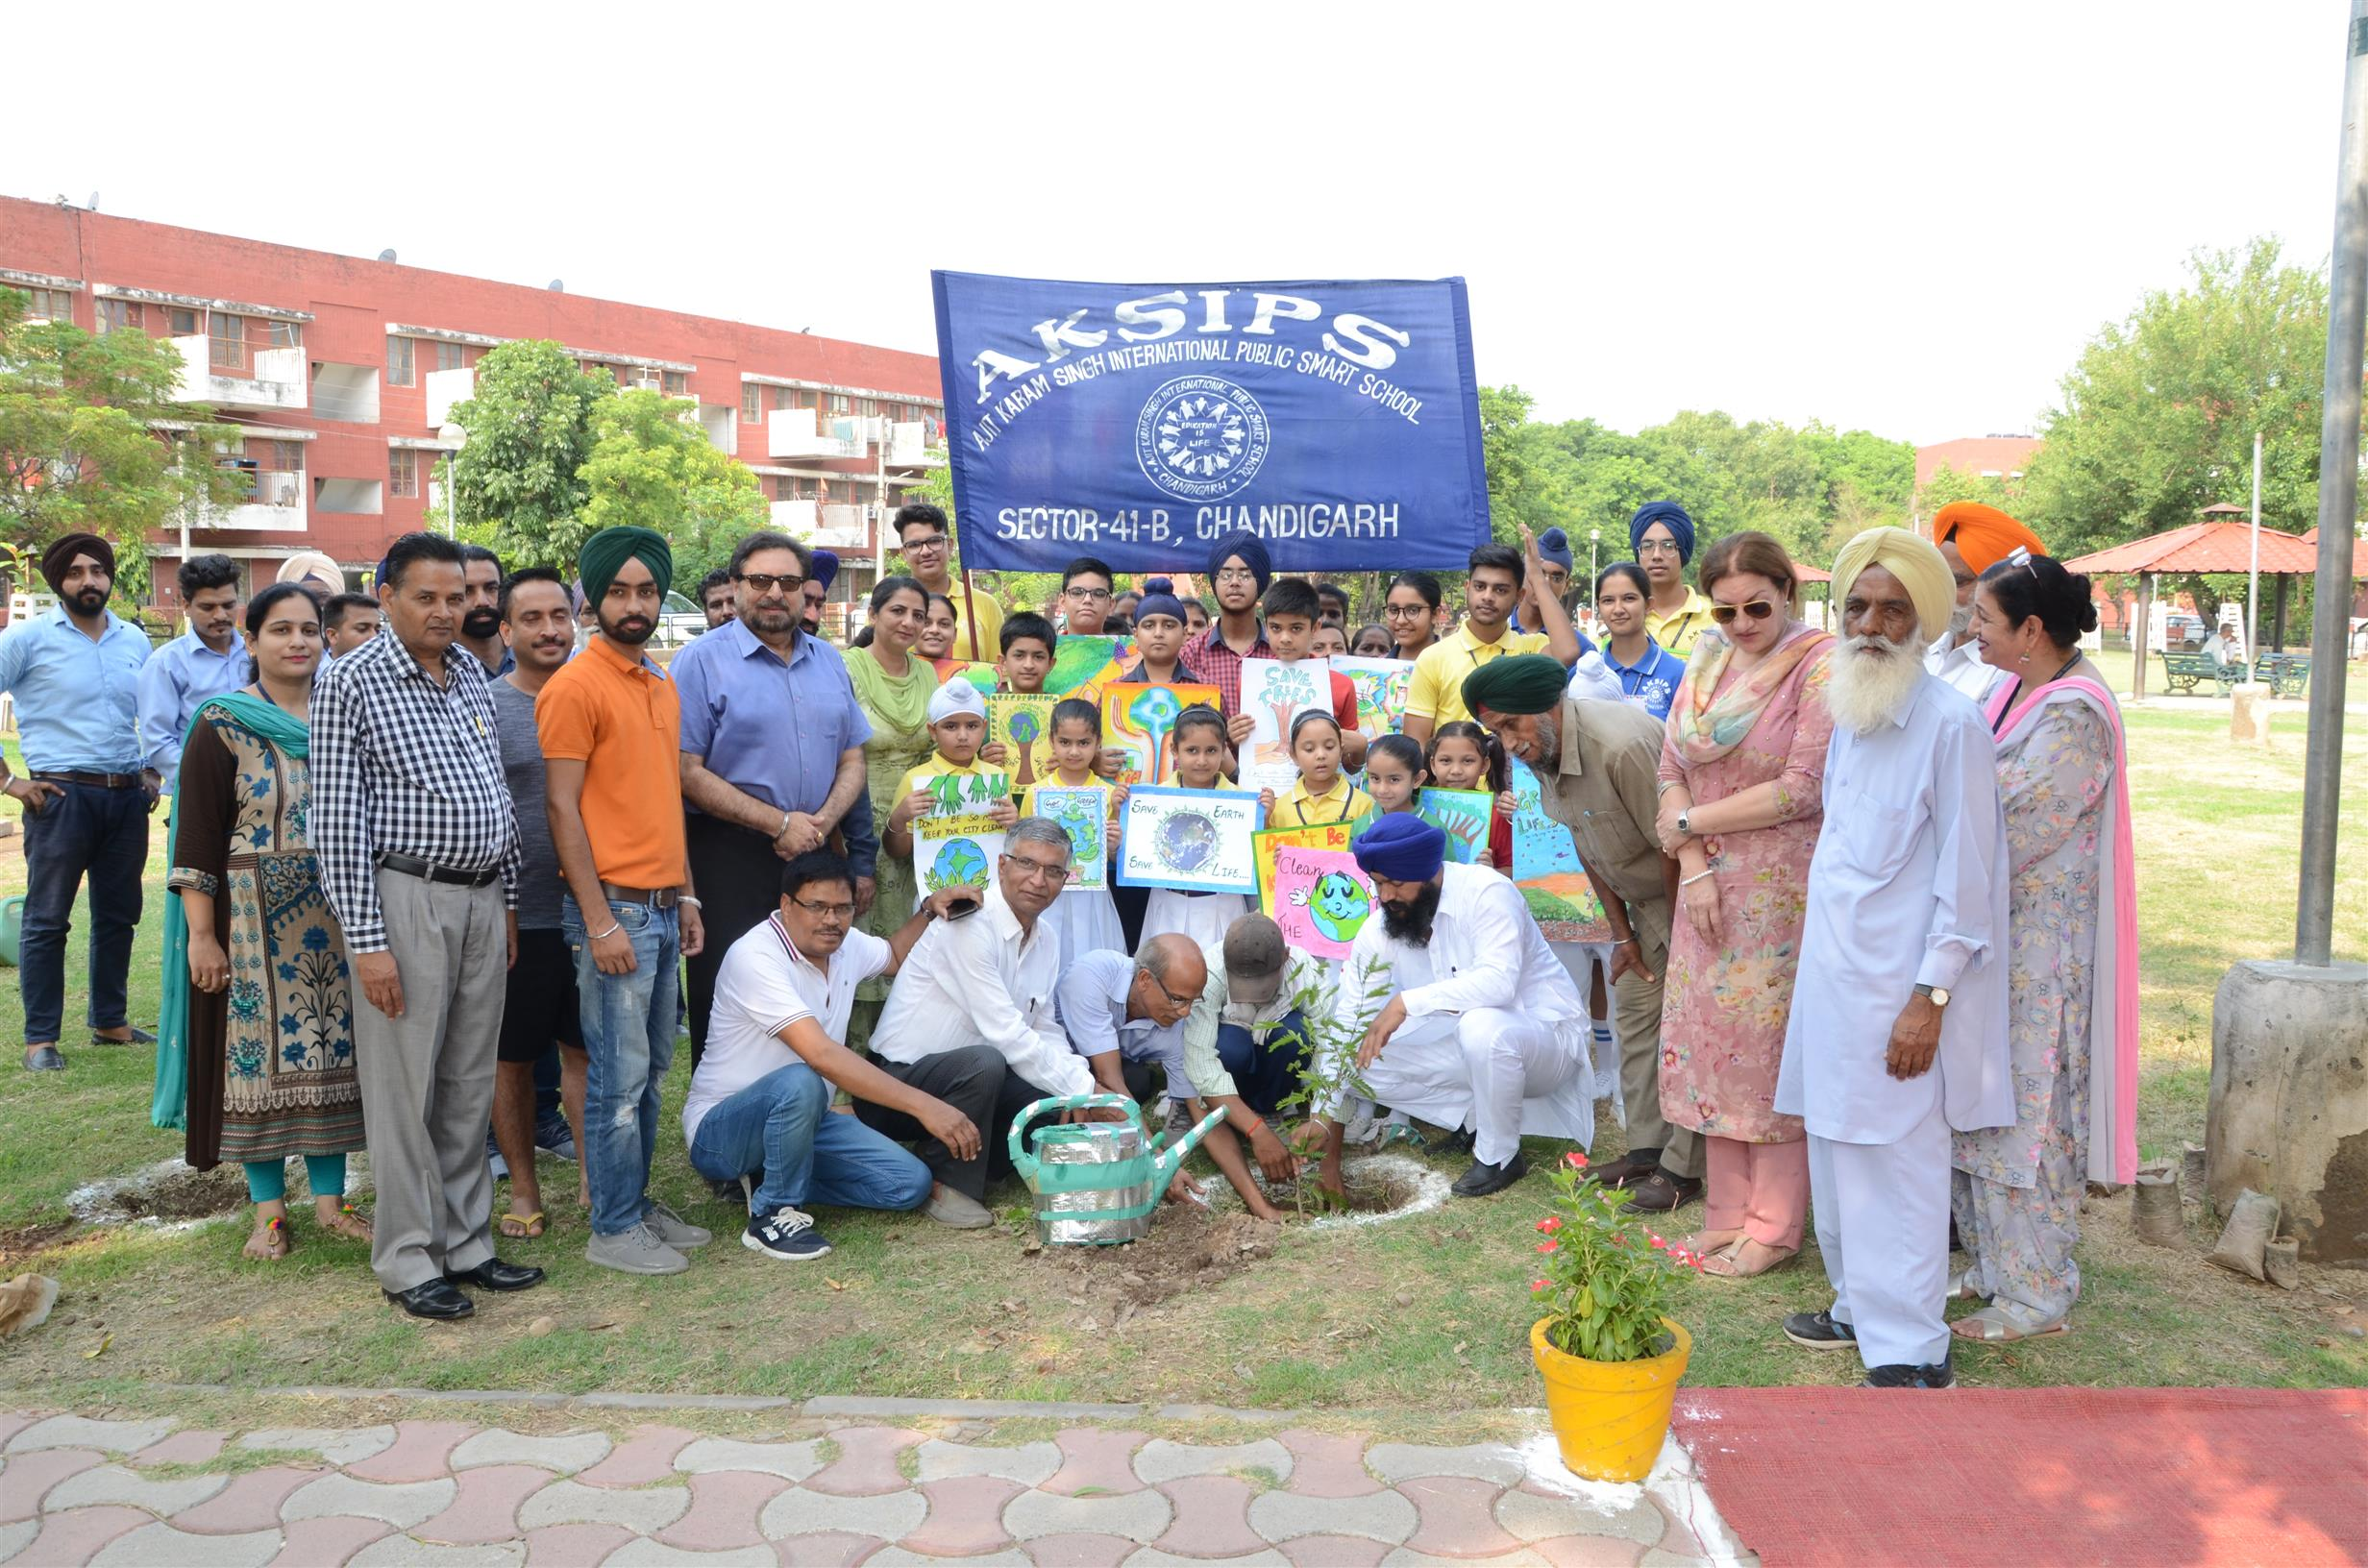 EACH ONE – PLANT ONE DRIVE AT AKSIPS 41 | AKSIPS 41 Chandigarh